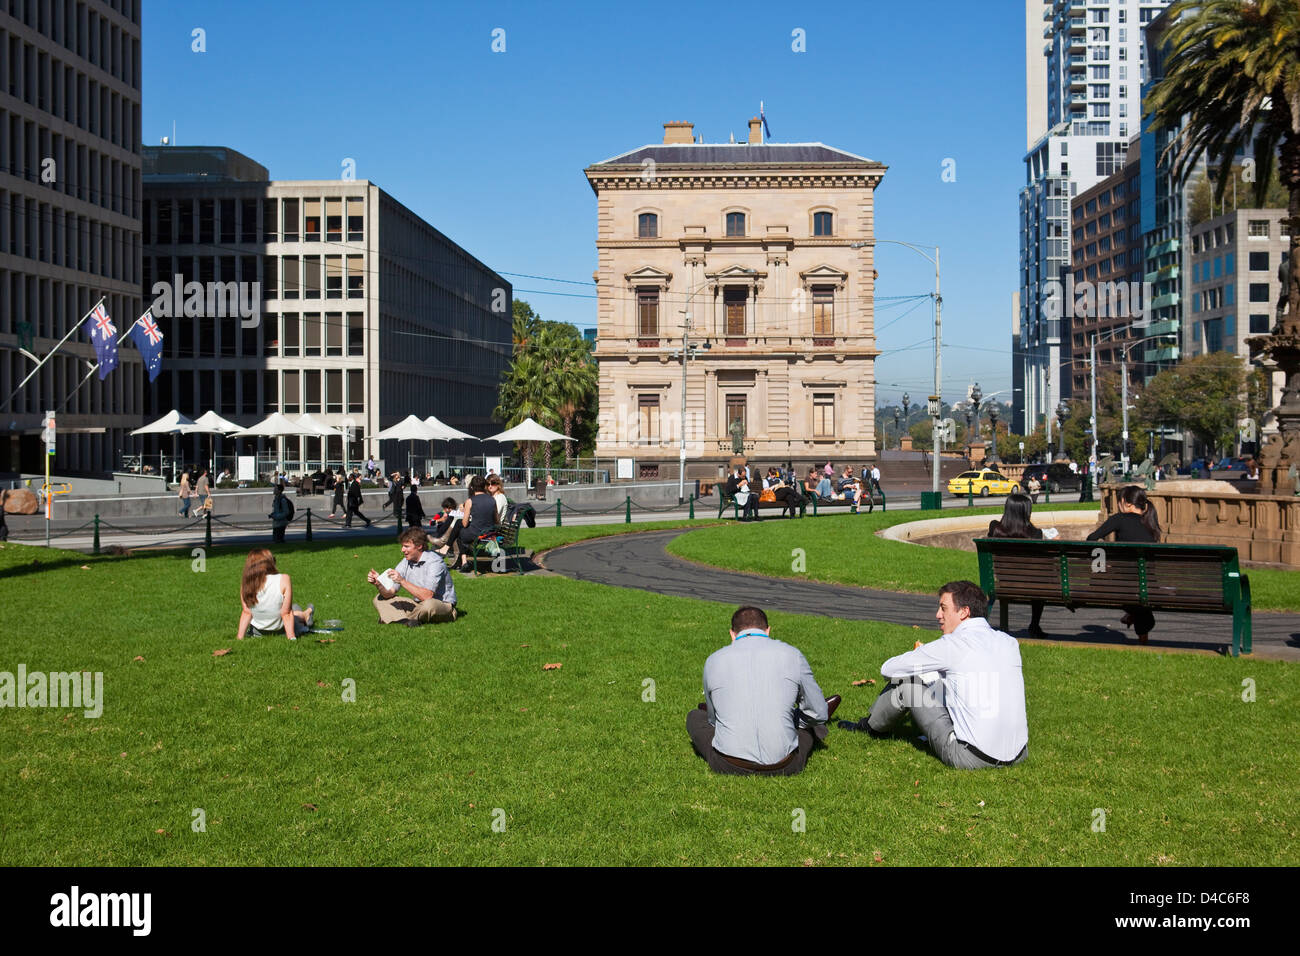 City workers relaxing on the lawn at Parliament Gardens. Fitzroy, Melbourne, Victoria, Australia Stock Photo